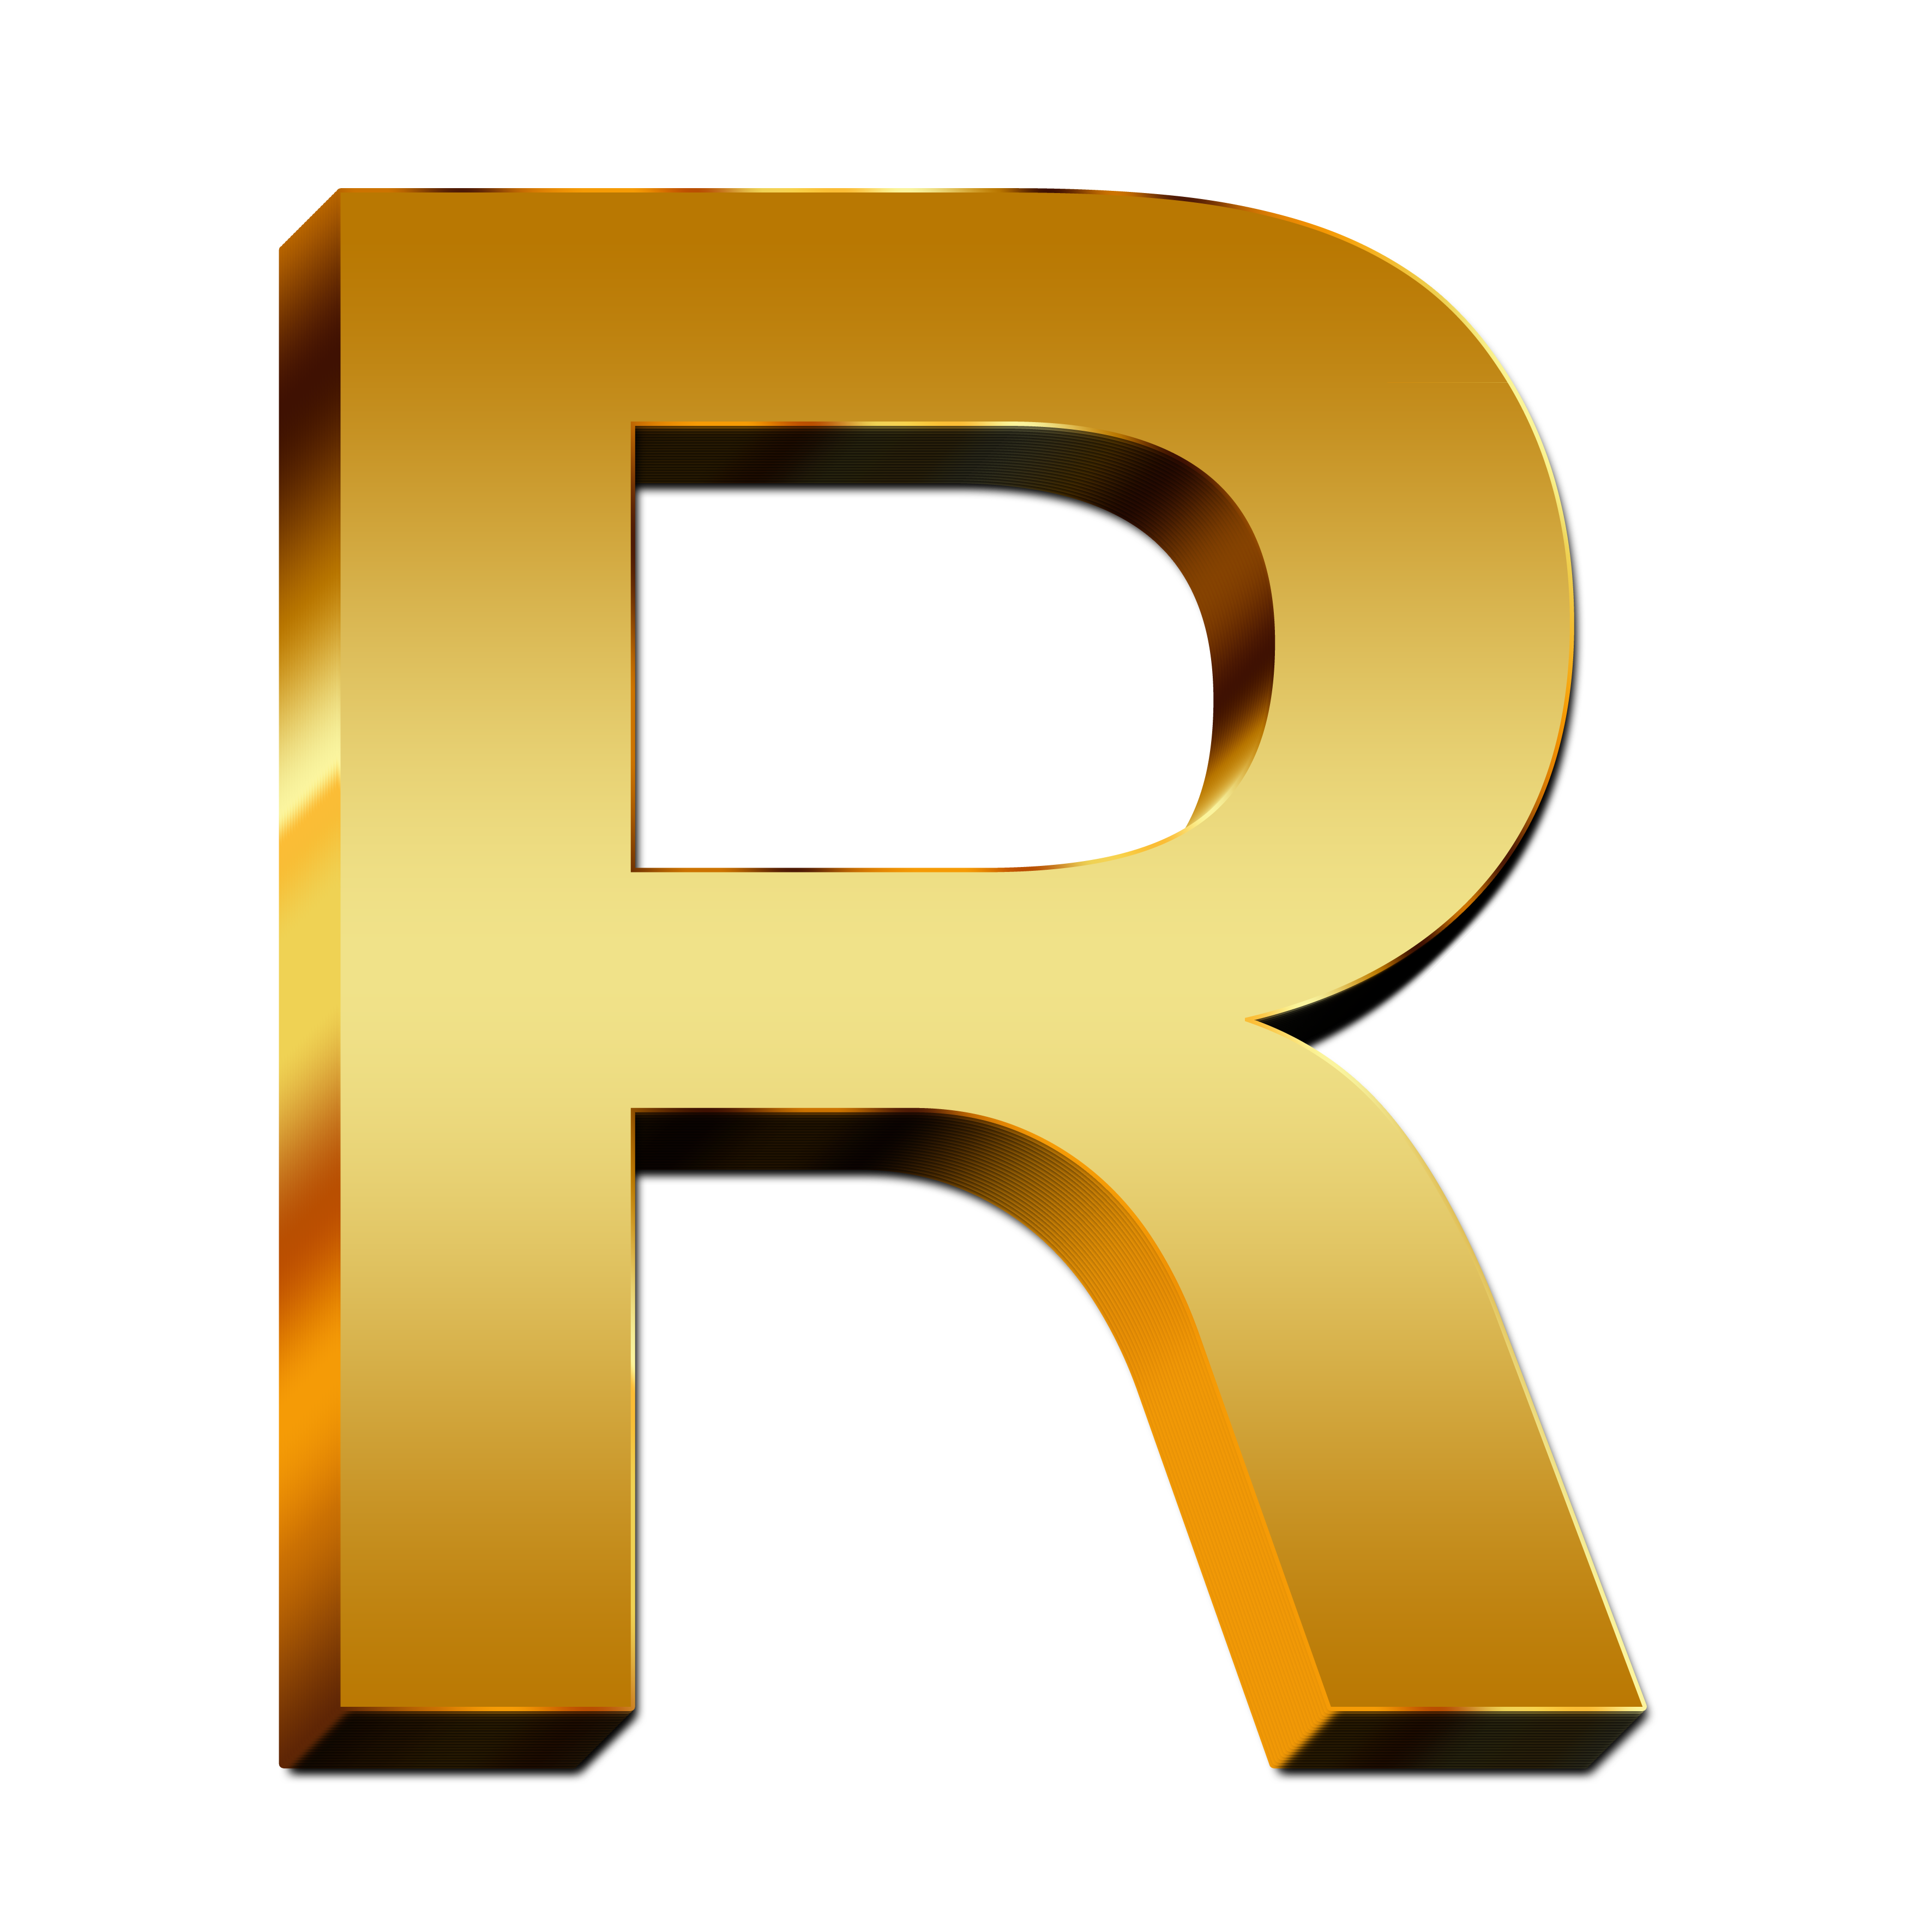 Capital Letter R Free Image